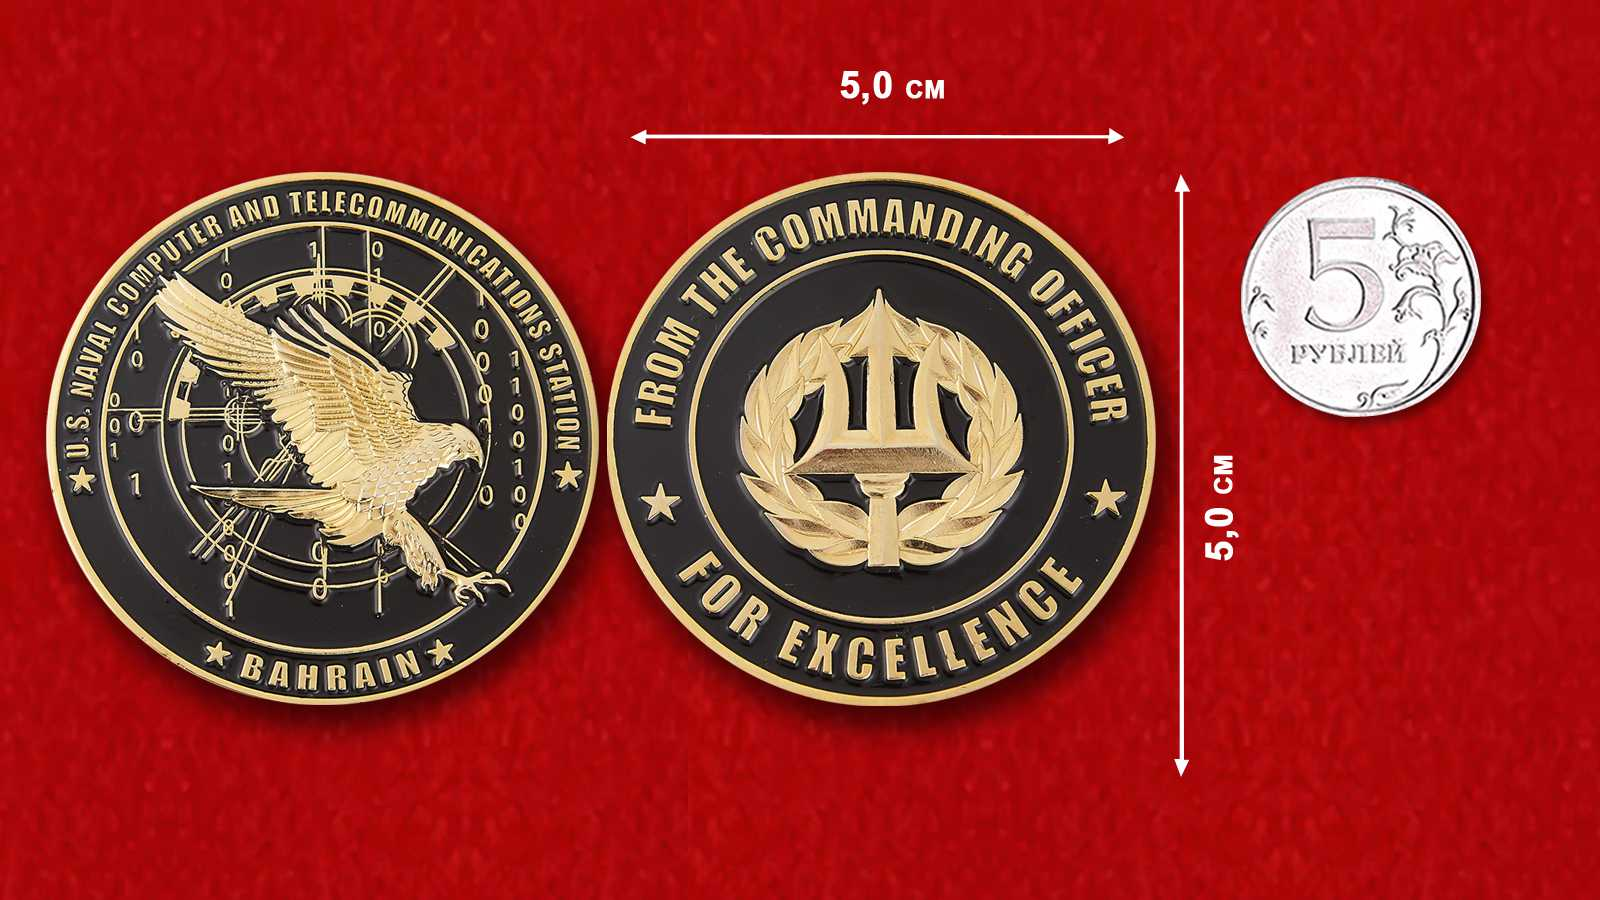 US Naval Computer And Telecommunication Station In Bahrain From The Commanding Officer Challenge Coin